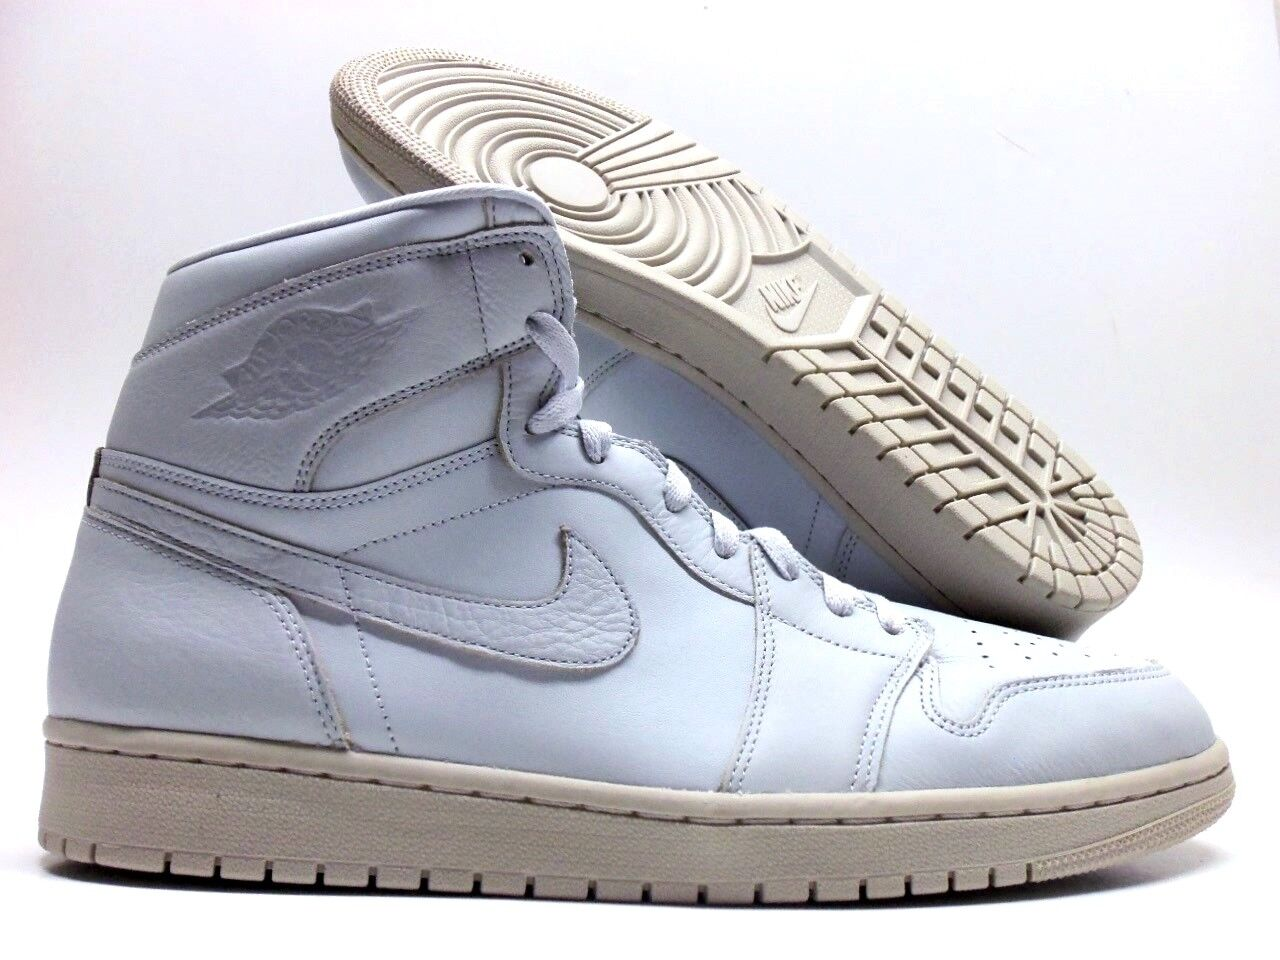 NIKE AIR JORDAN 1 RETRO HIGH PREMIUM PURE PLATINUM SIZE MEN'S 14 [AA3993-030]